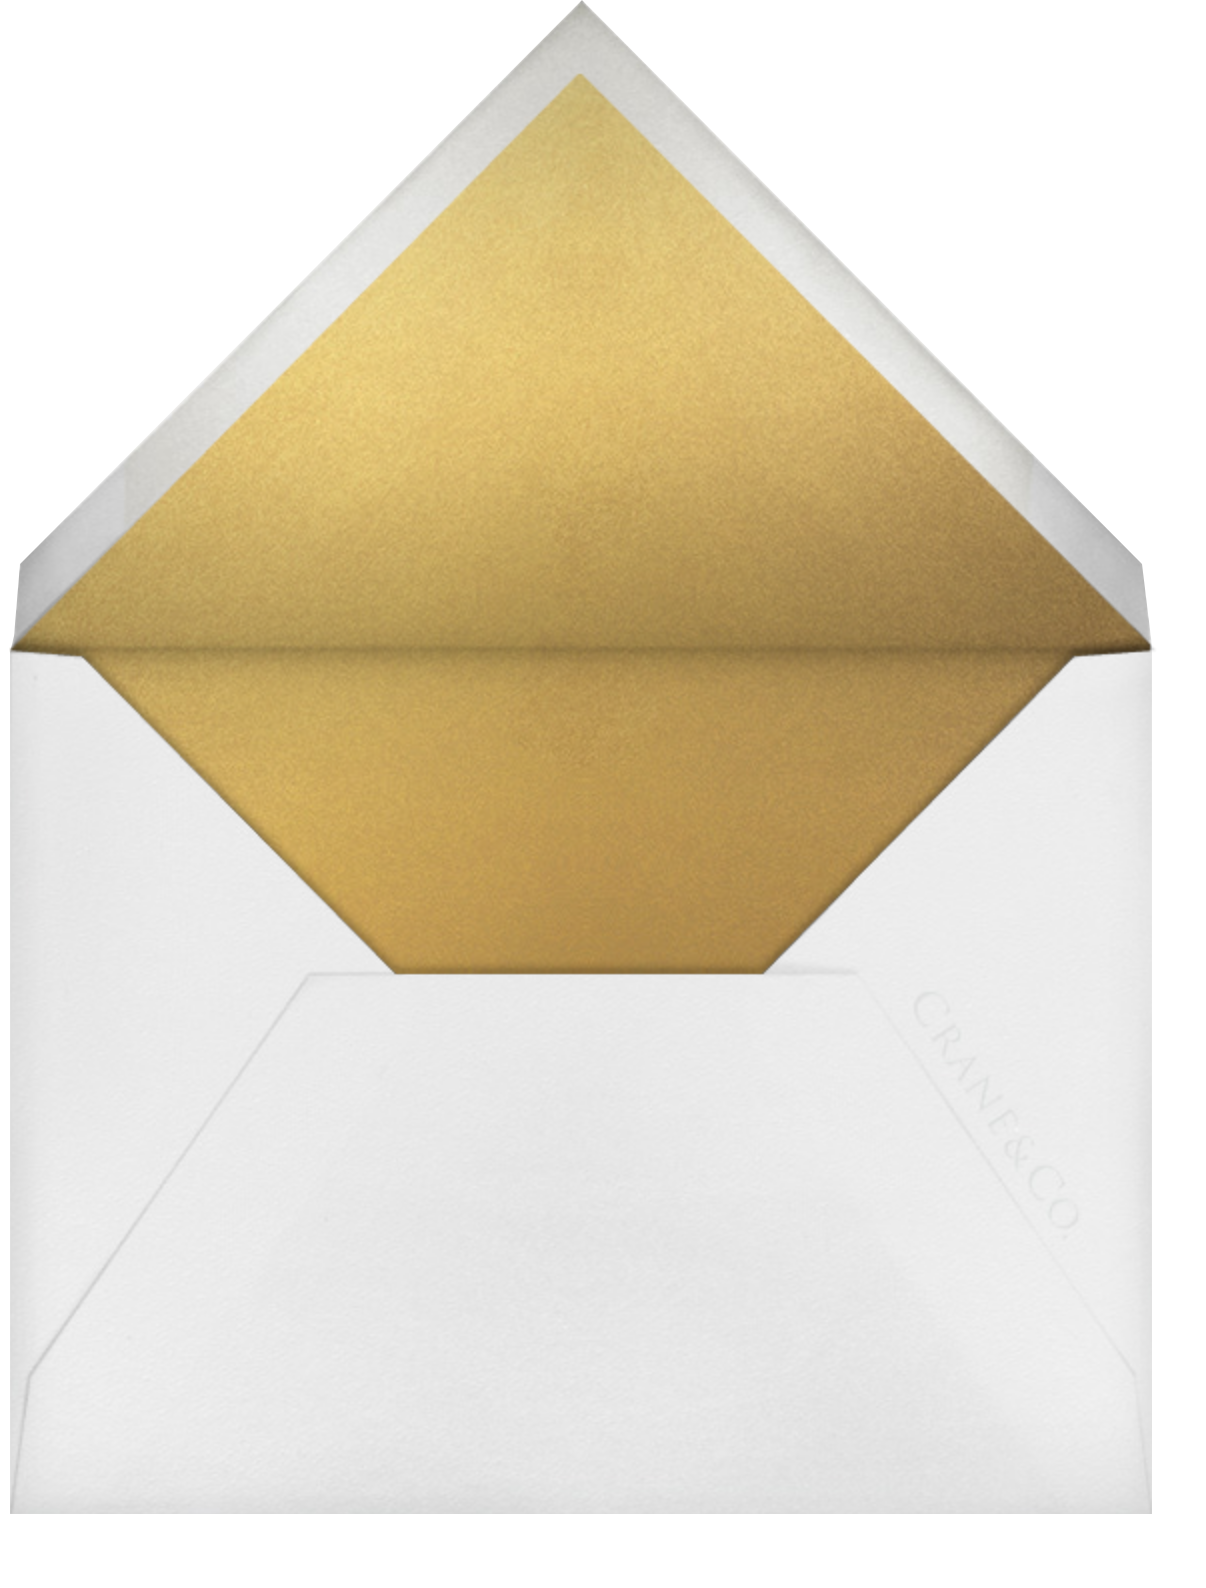 Glisten (Invitation) - Gold - Kelly Wearstler - All - envelope back